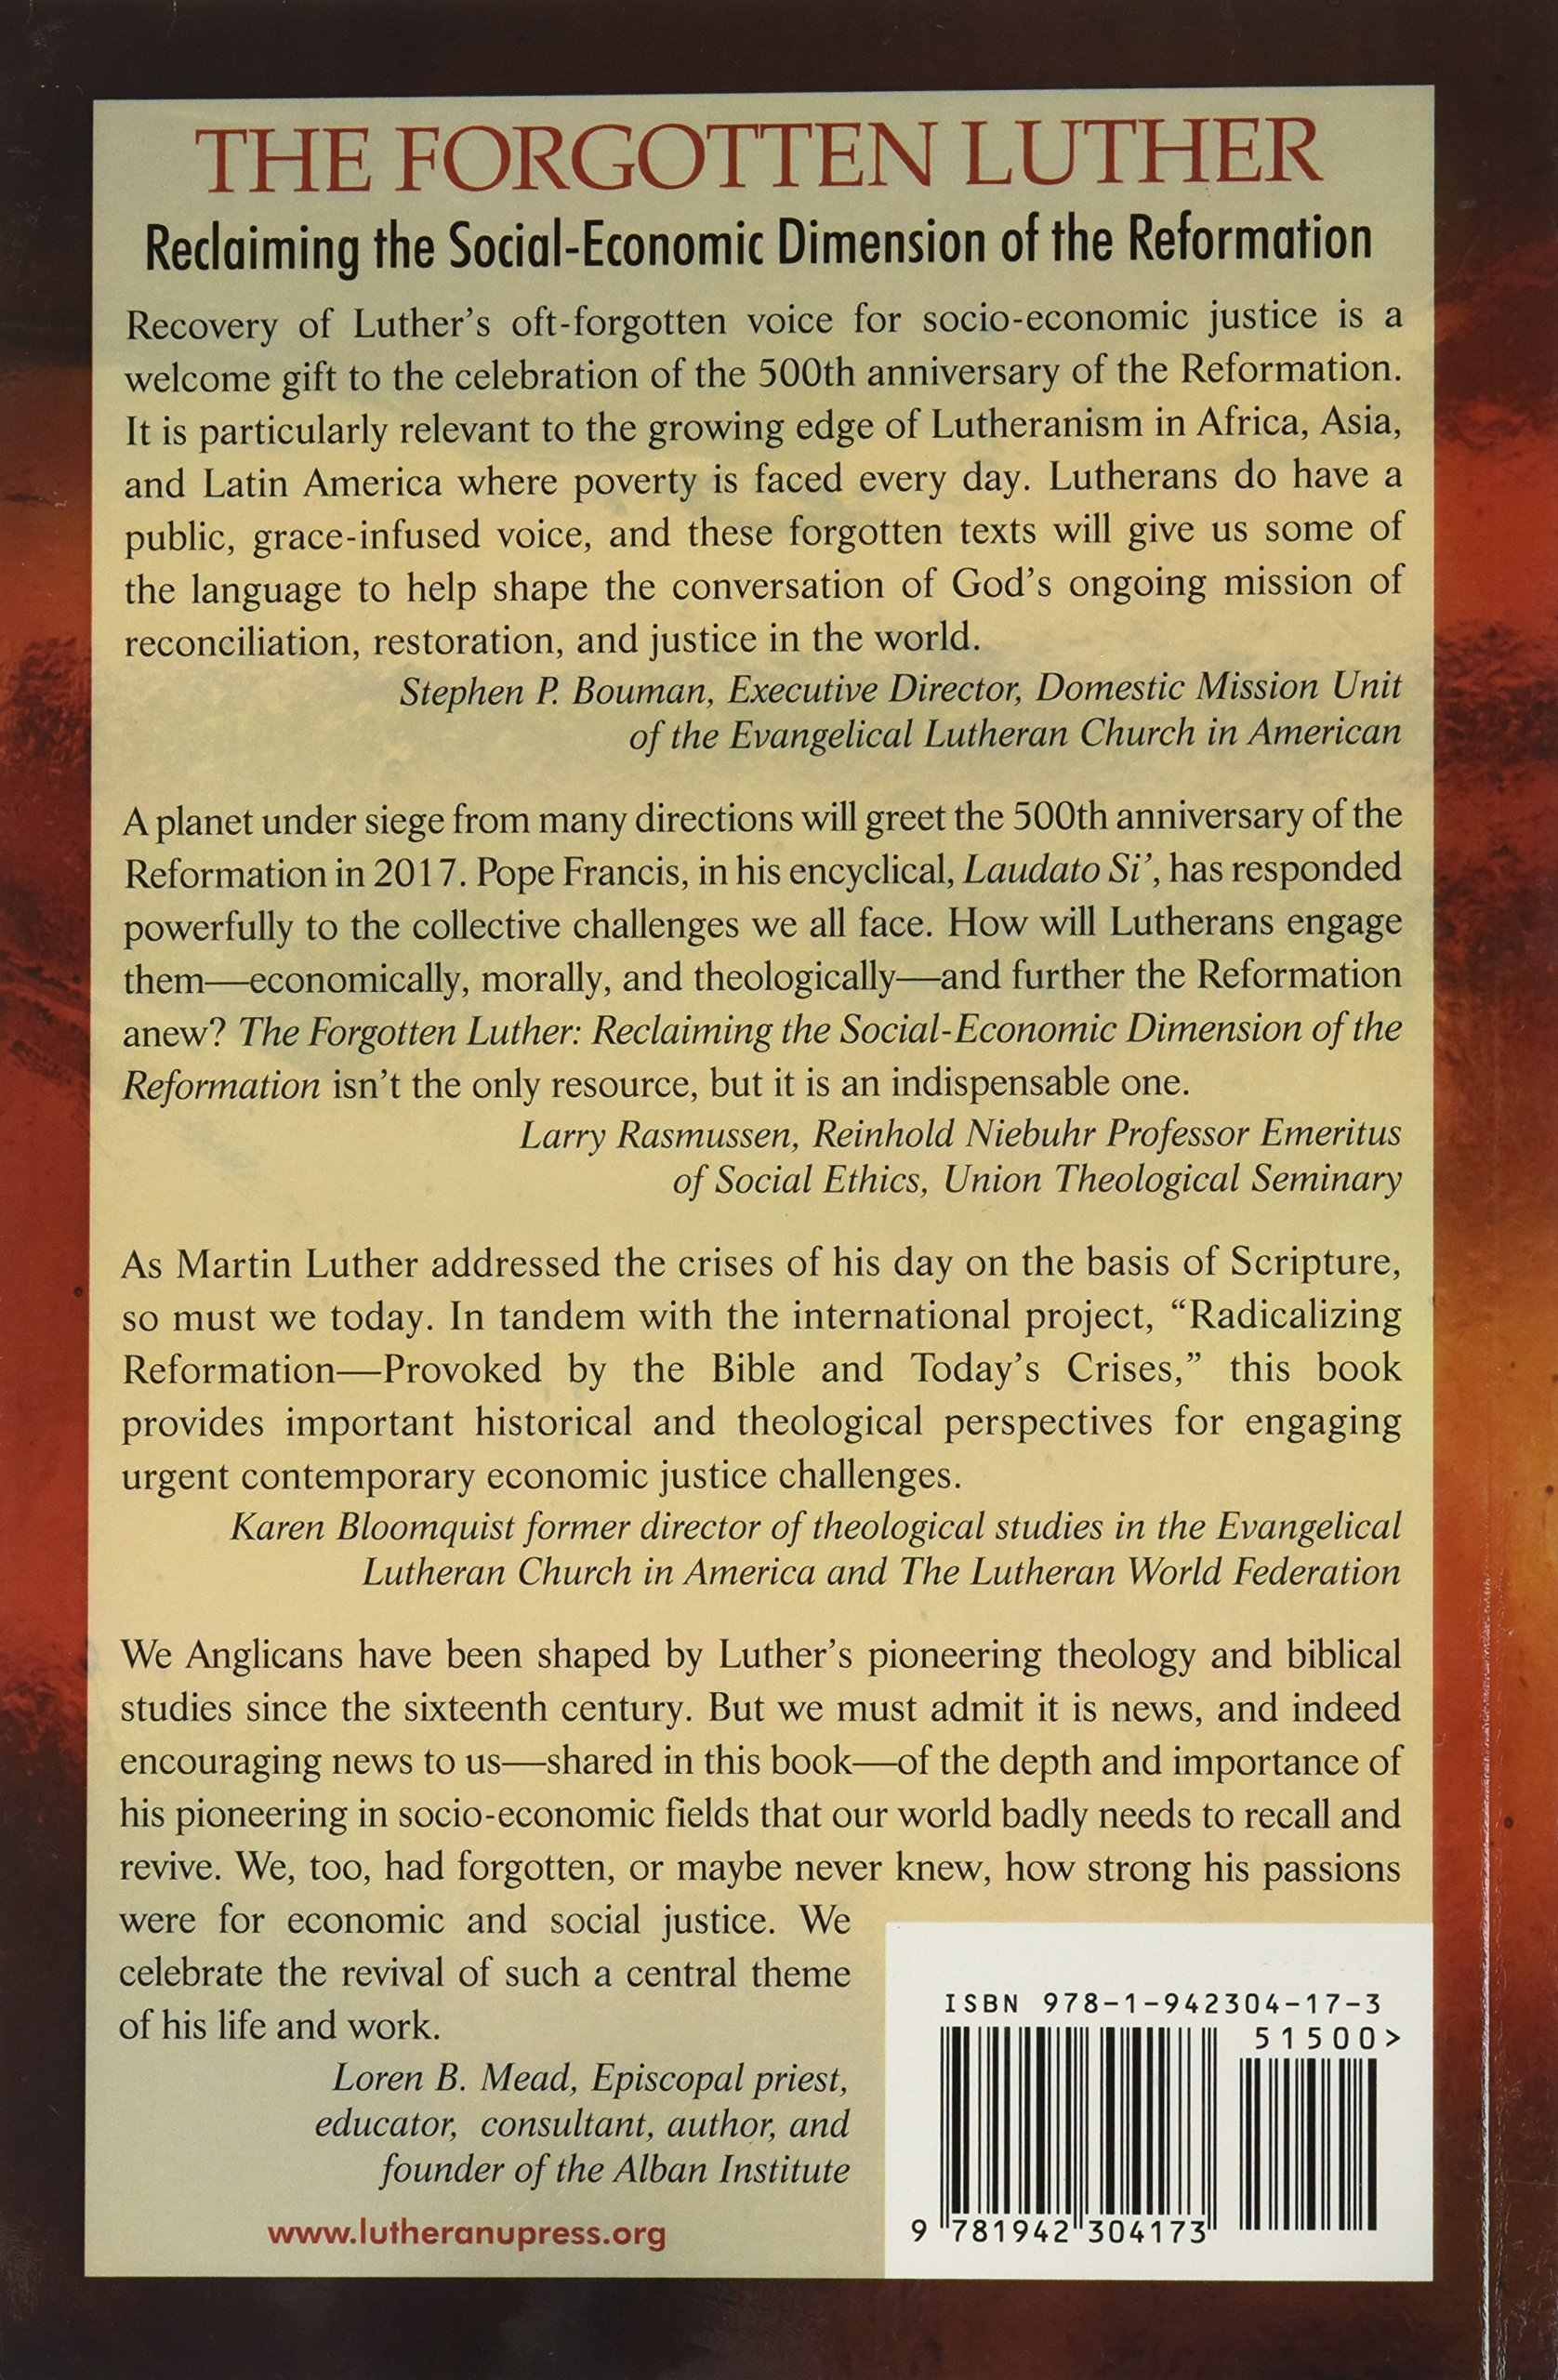 The Forgotten Luther: Carter Lindberg, Editor, Paul Wee: 9781942304173:  Amazon: Books